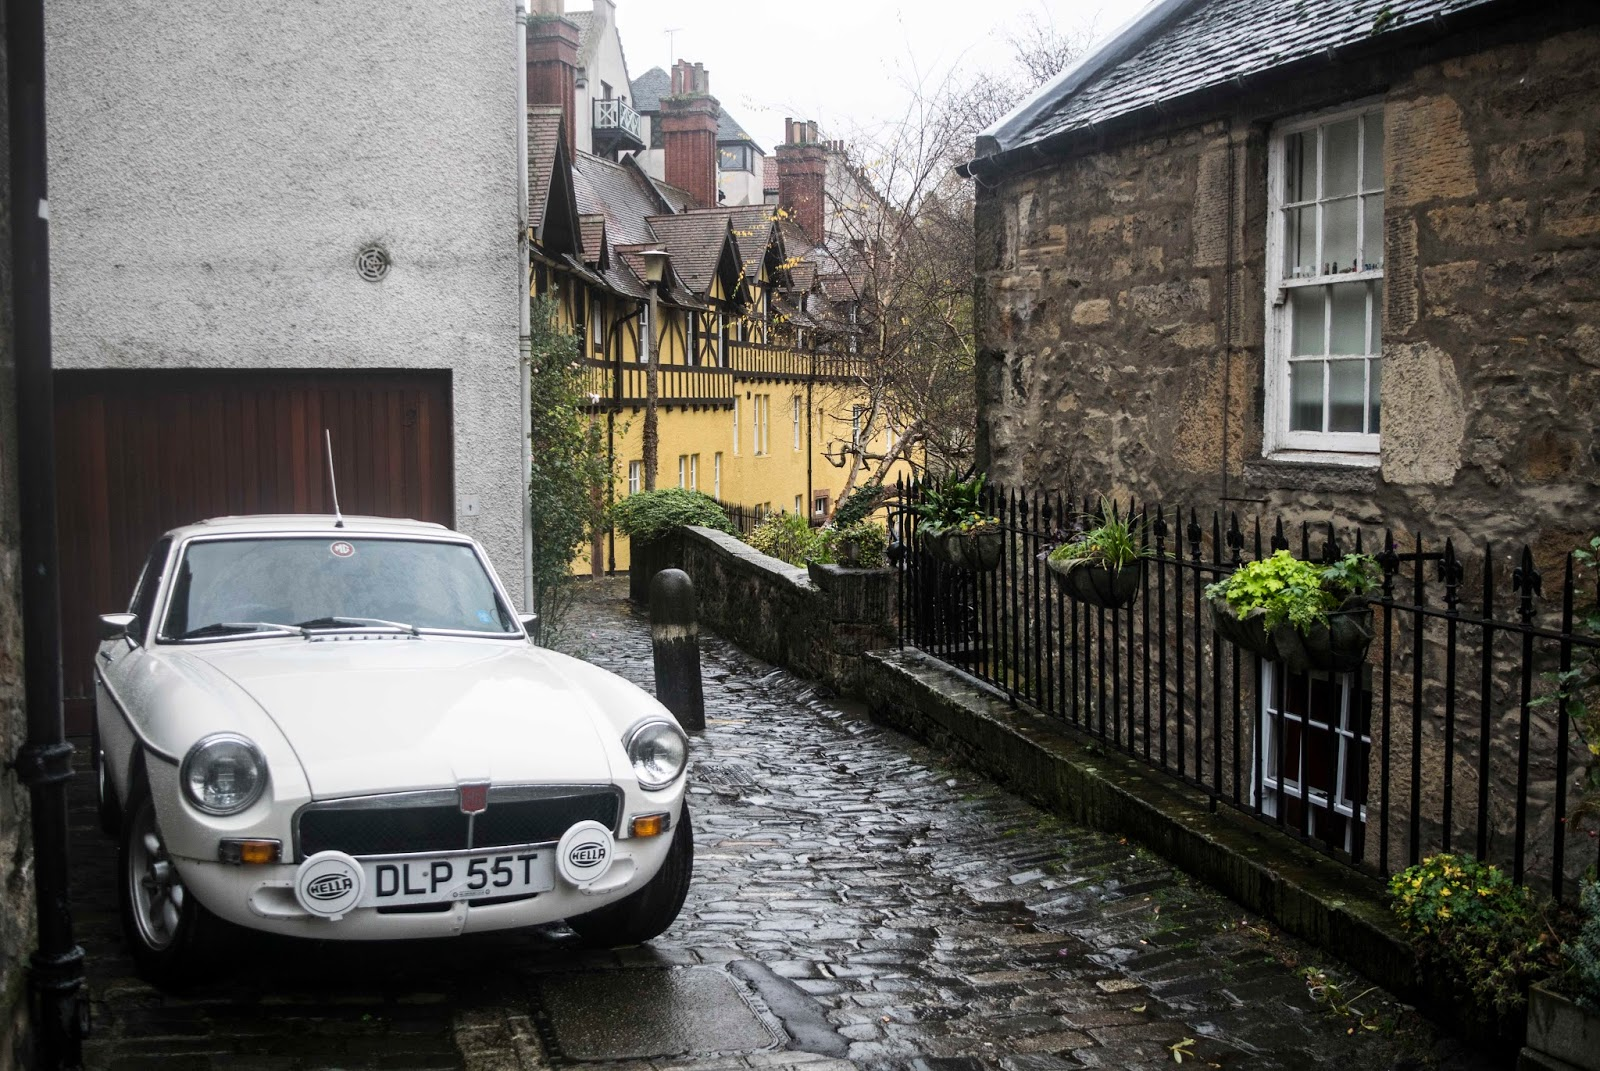 W Wa Jeziorki November 2017 Diagrams Dragon School Of Motoring Classic Mgb Gt Echoing This Picture From Another Capital Citys Riverside